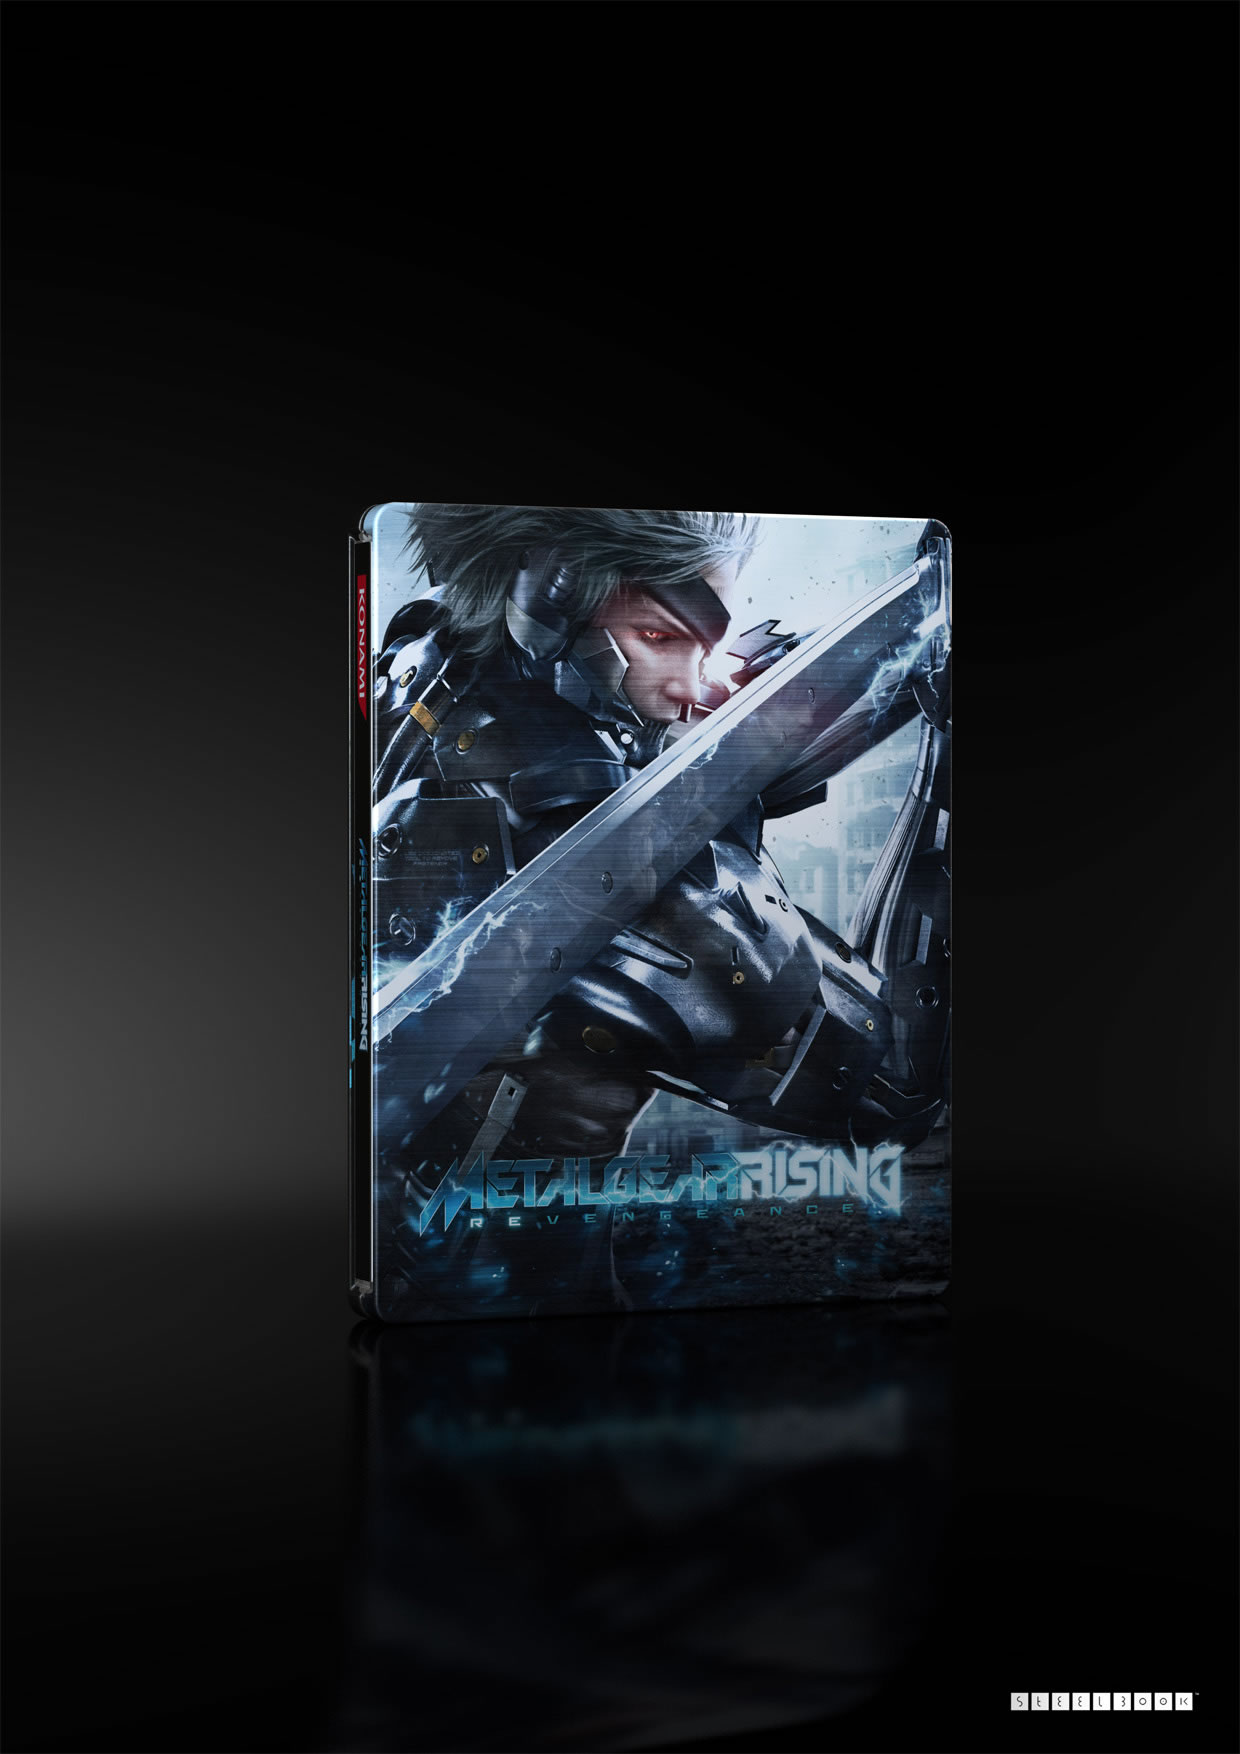 Le collector européen de Metal Gear Rising Revengeance